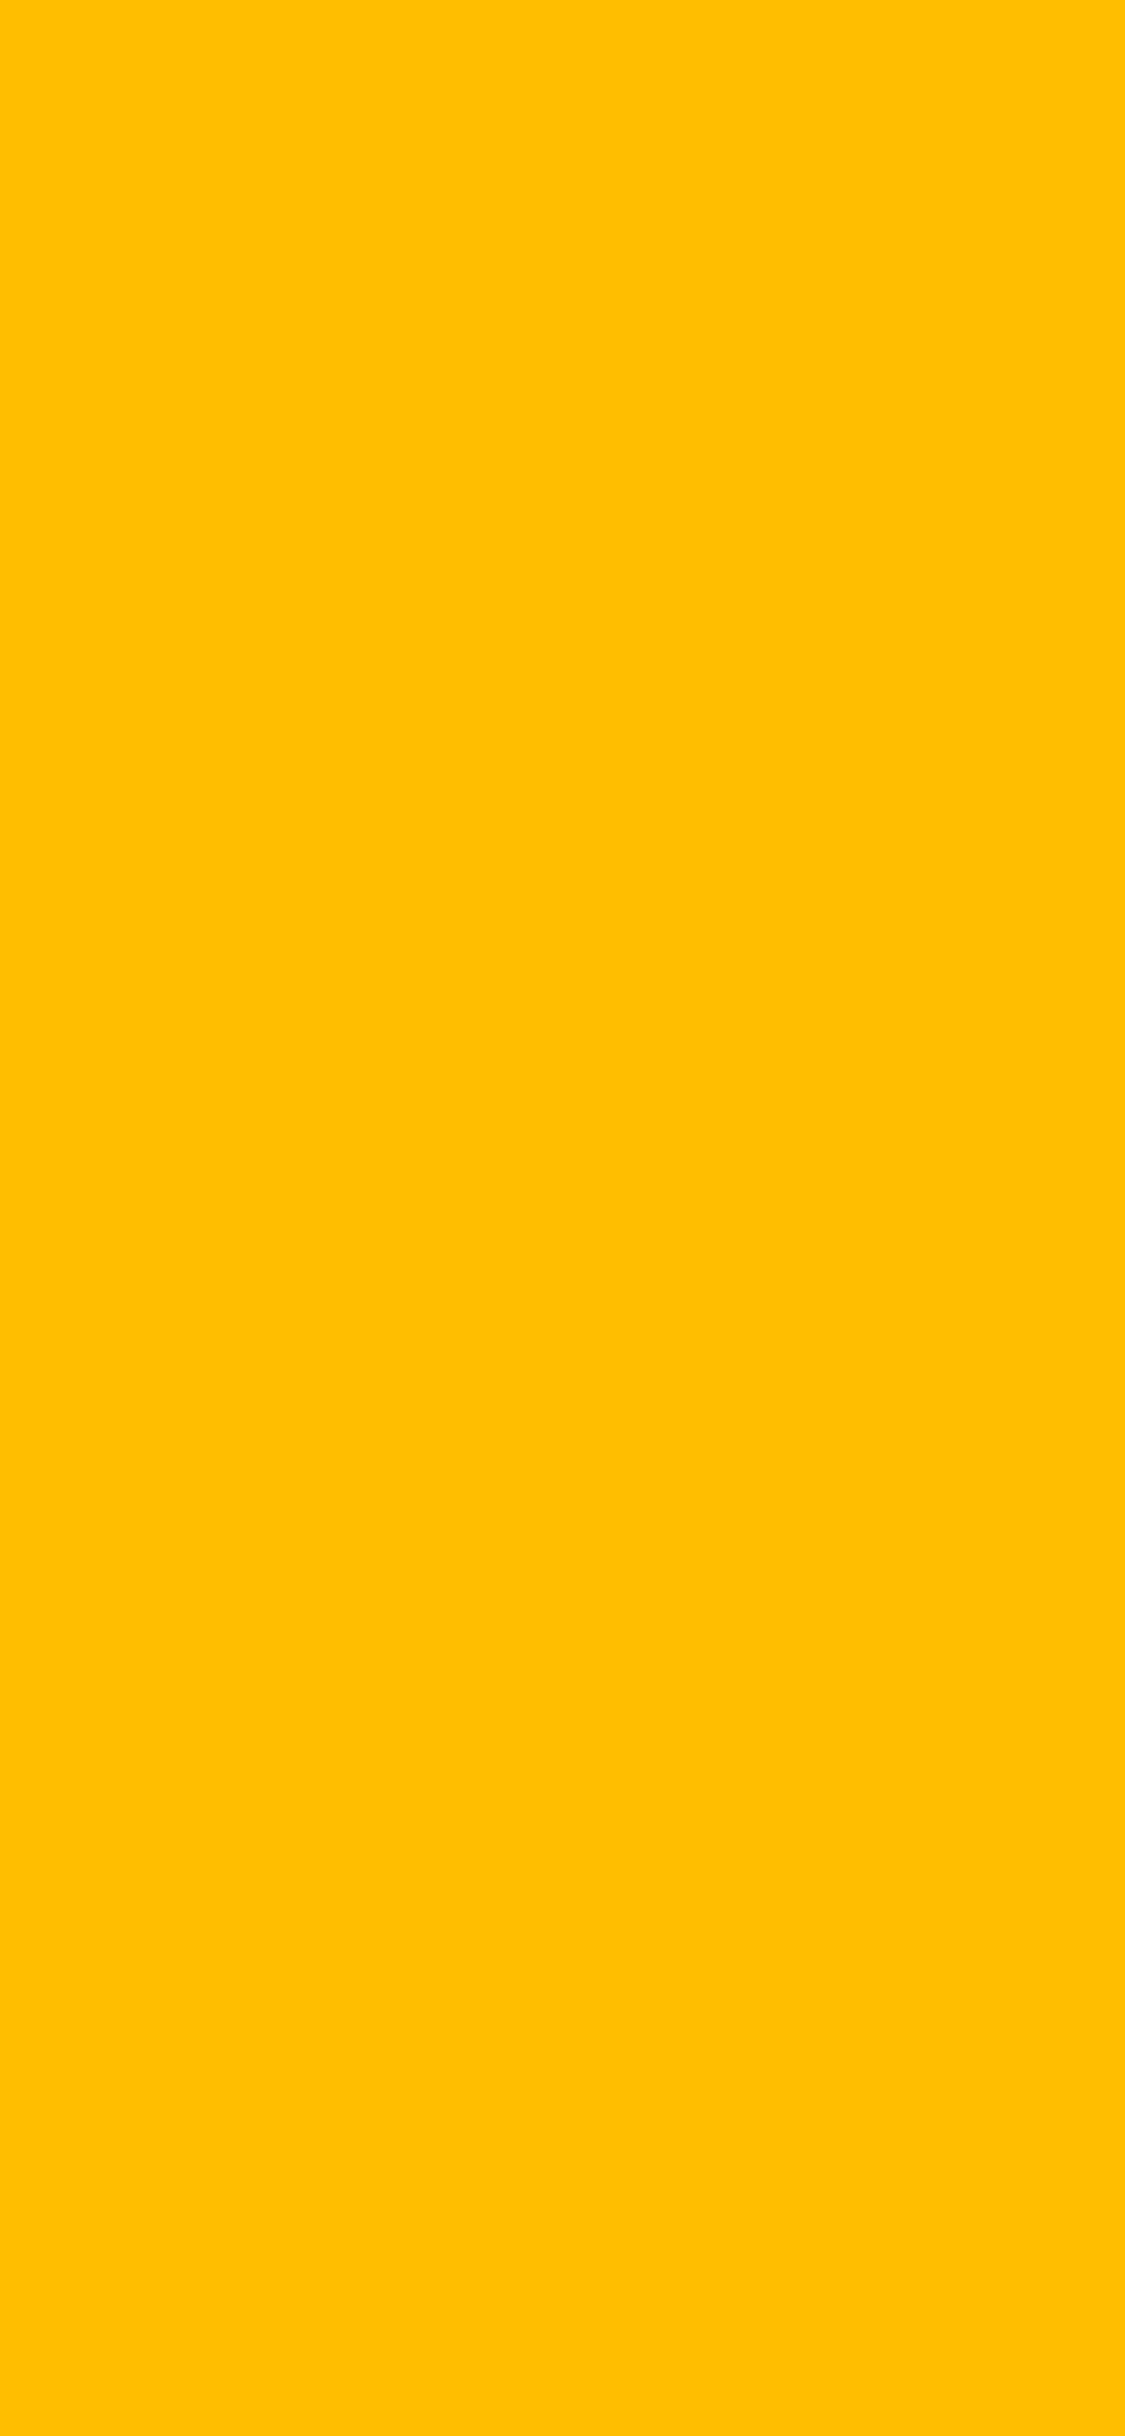 1125x2436 Amber Solid Color Background